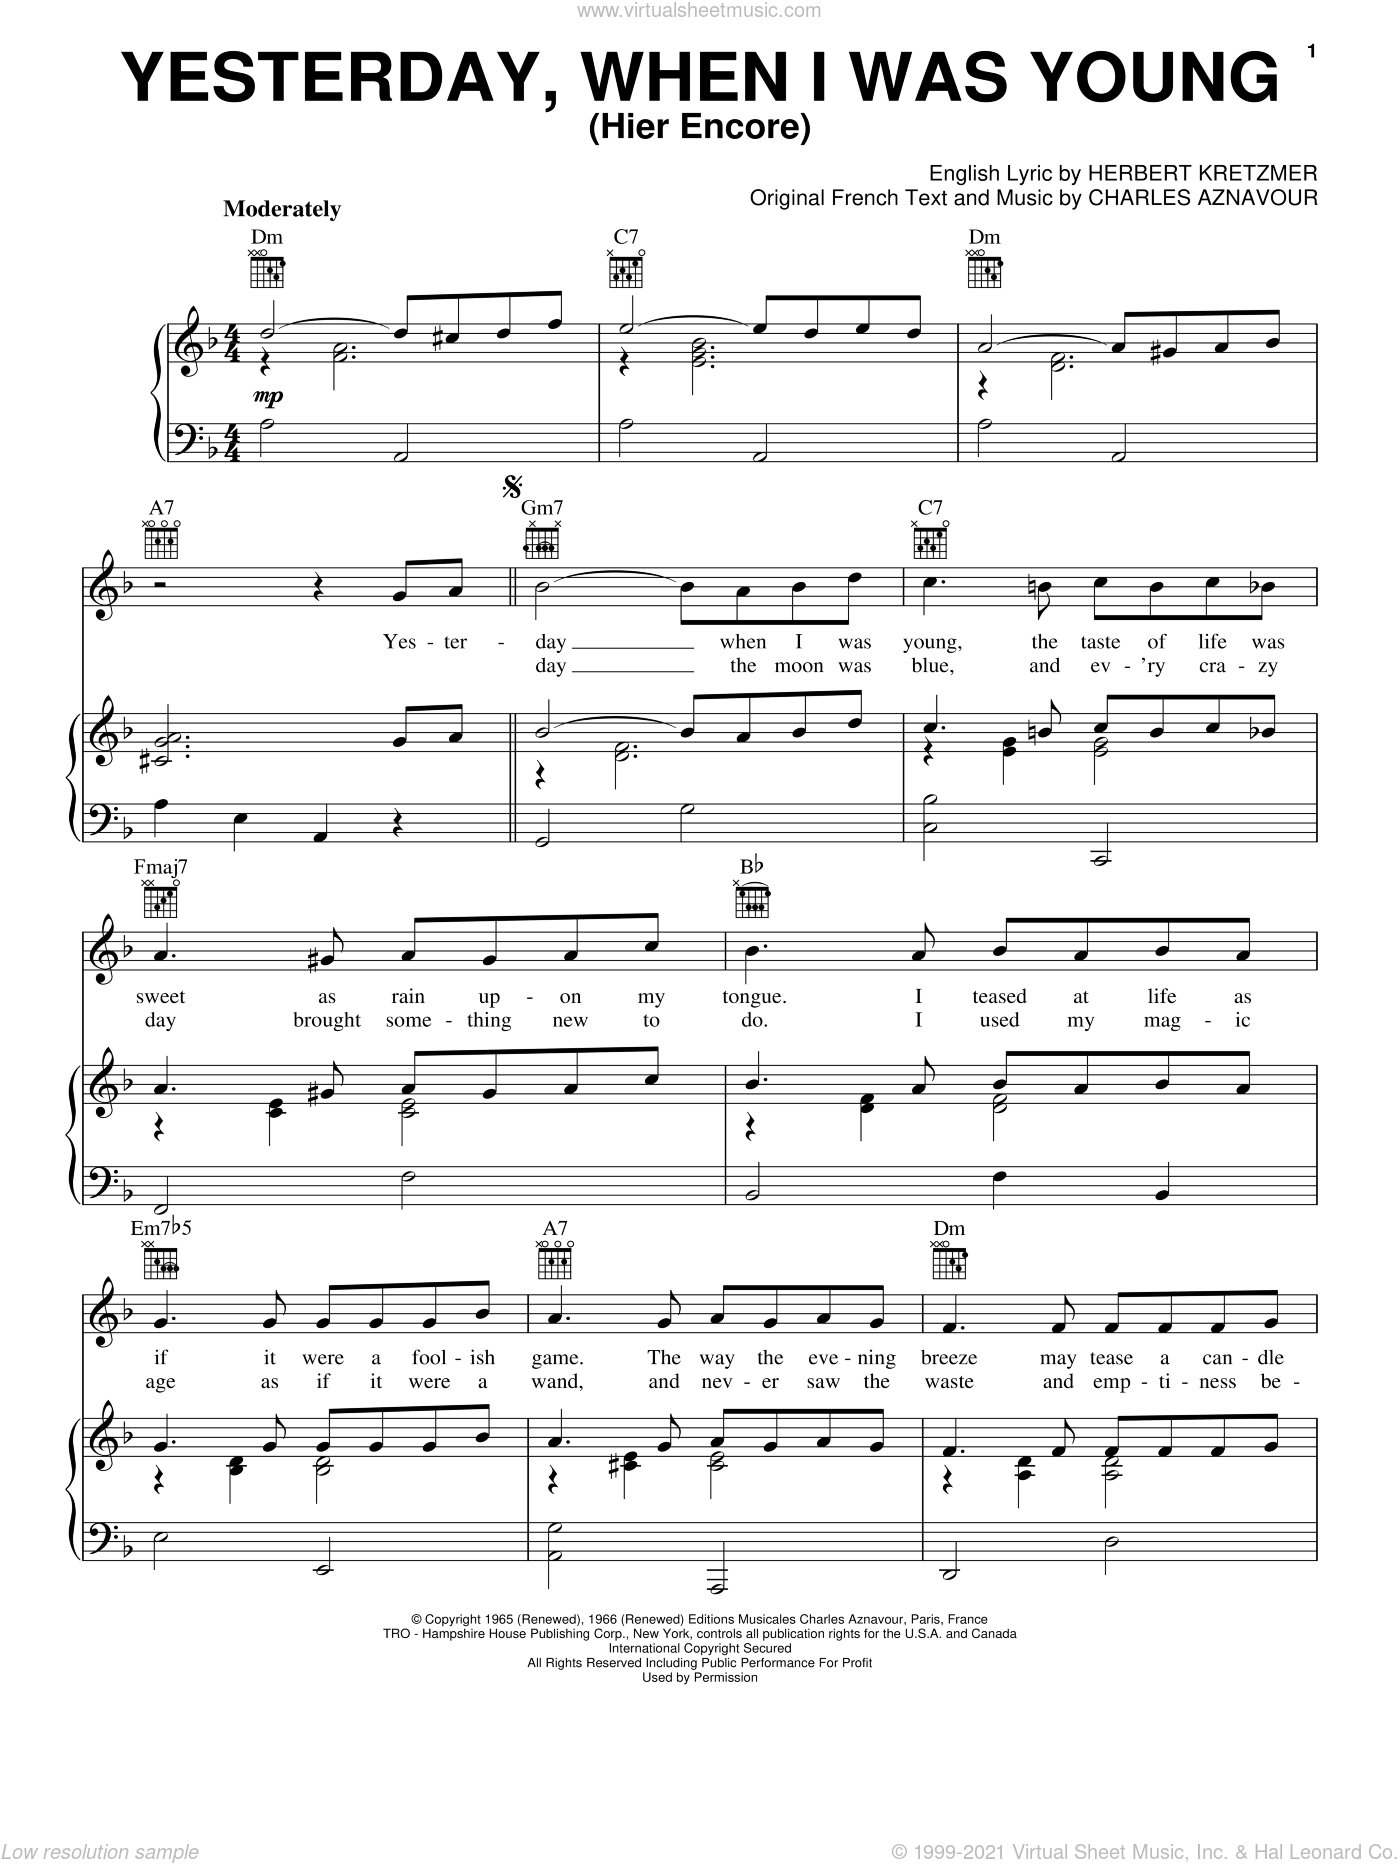 Yesterday When I Was Young (Hier Encore) sheet music for voice, piano or guitar by Charles Aznavour and Herbert Kretzmer, intermediate skill level